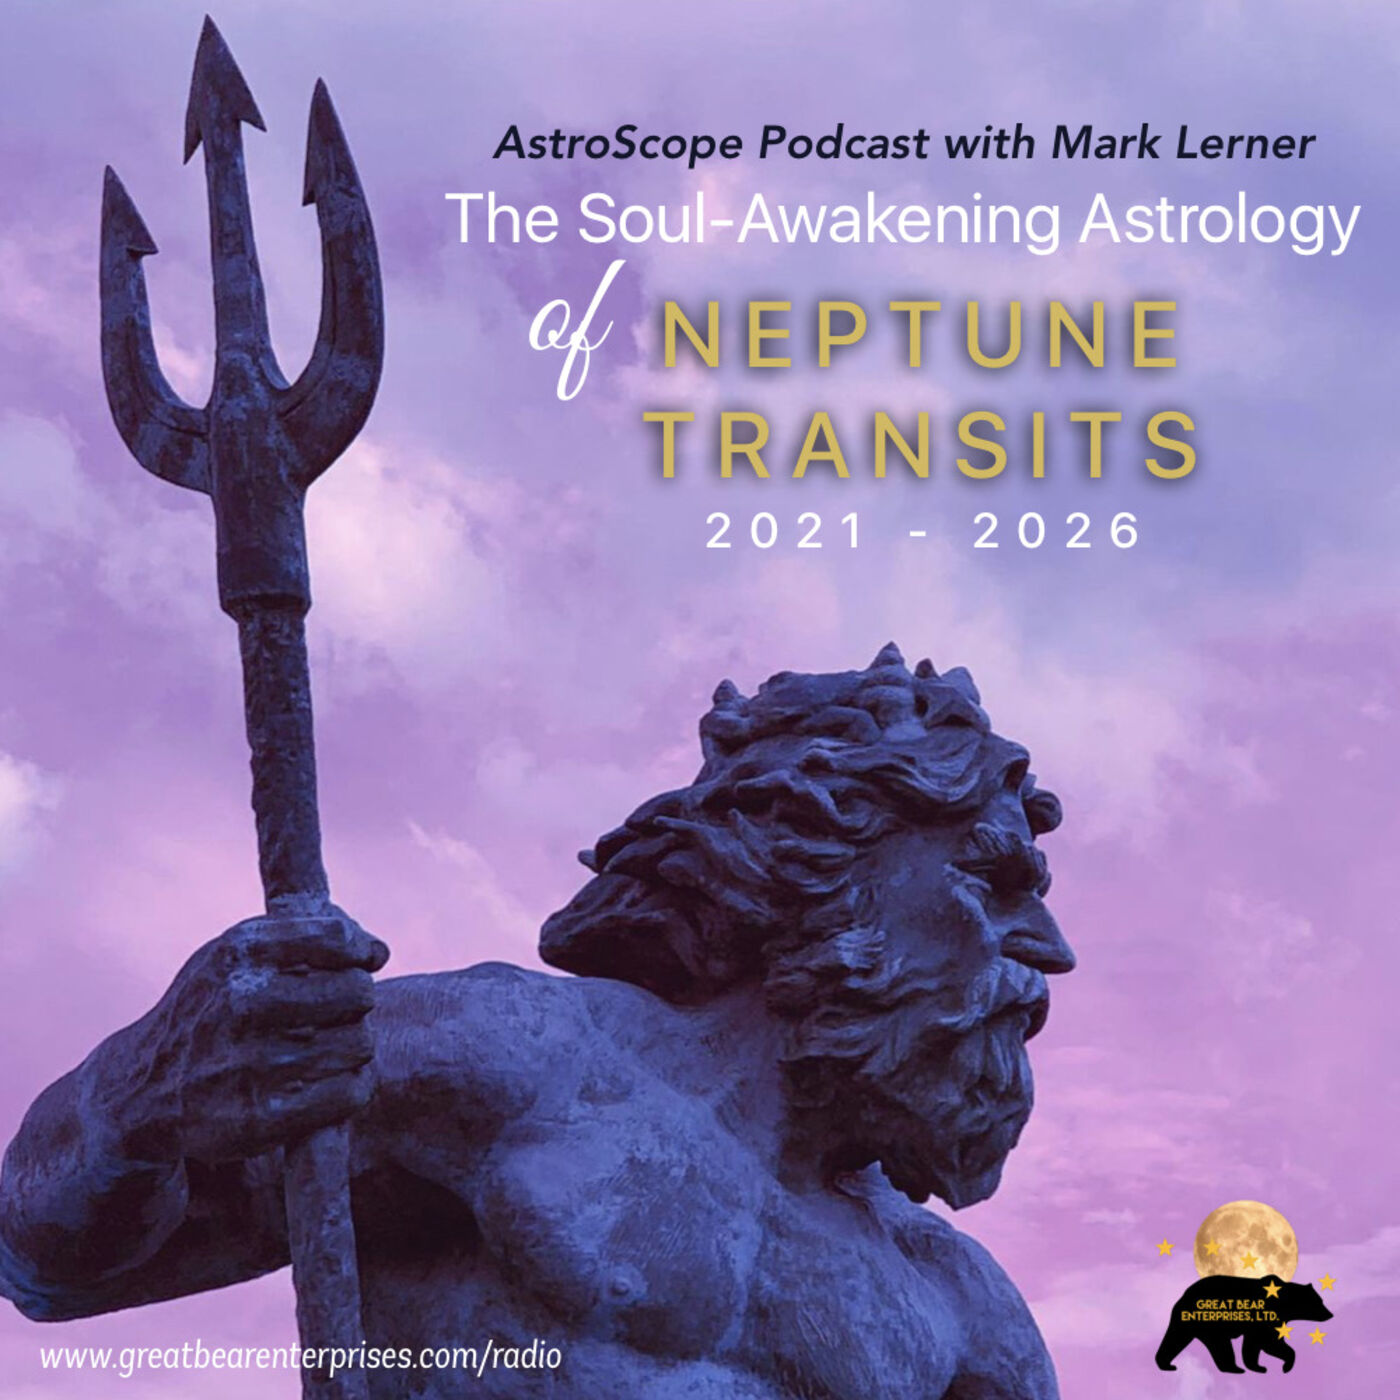 The Soul-Awakening Astrology of Neptune Transits 2021 to 2026